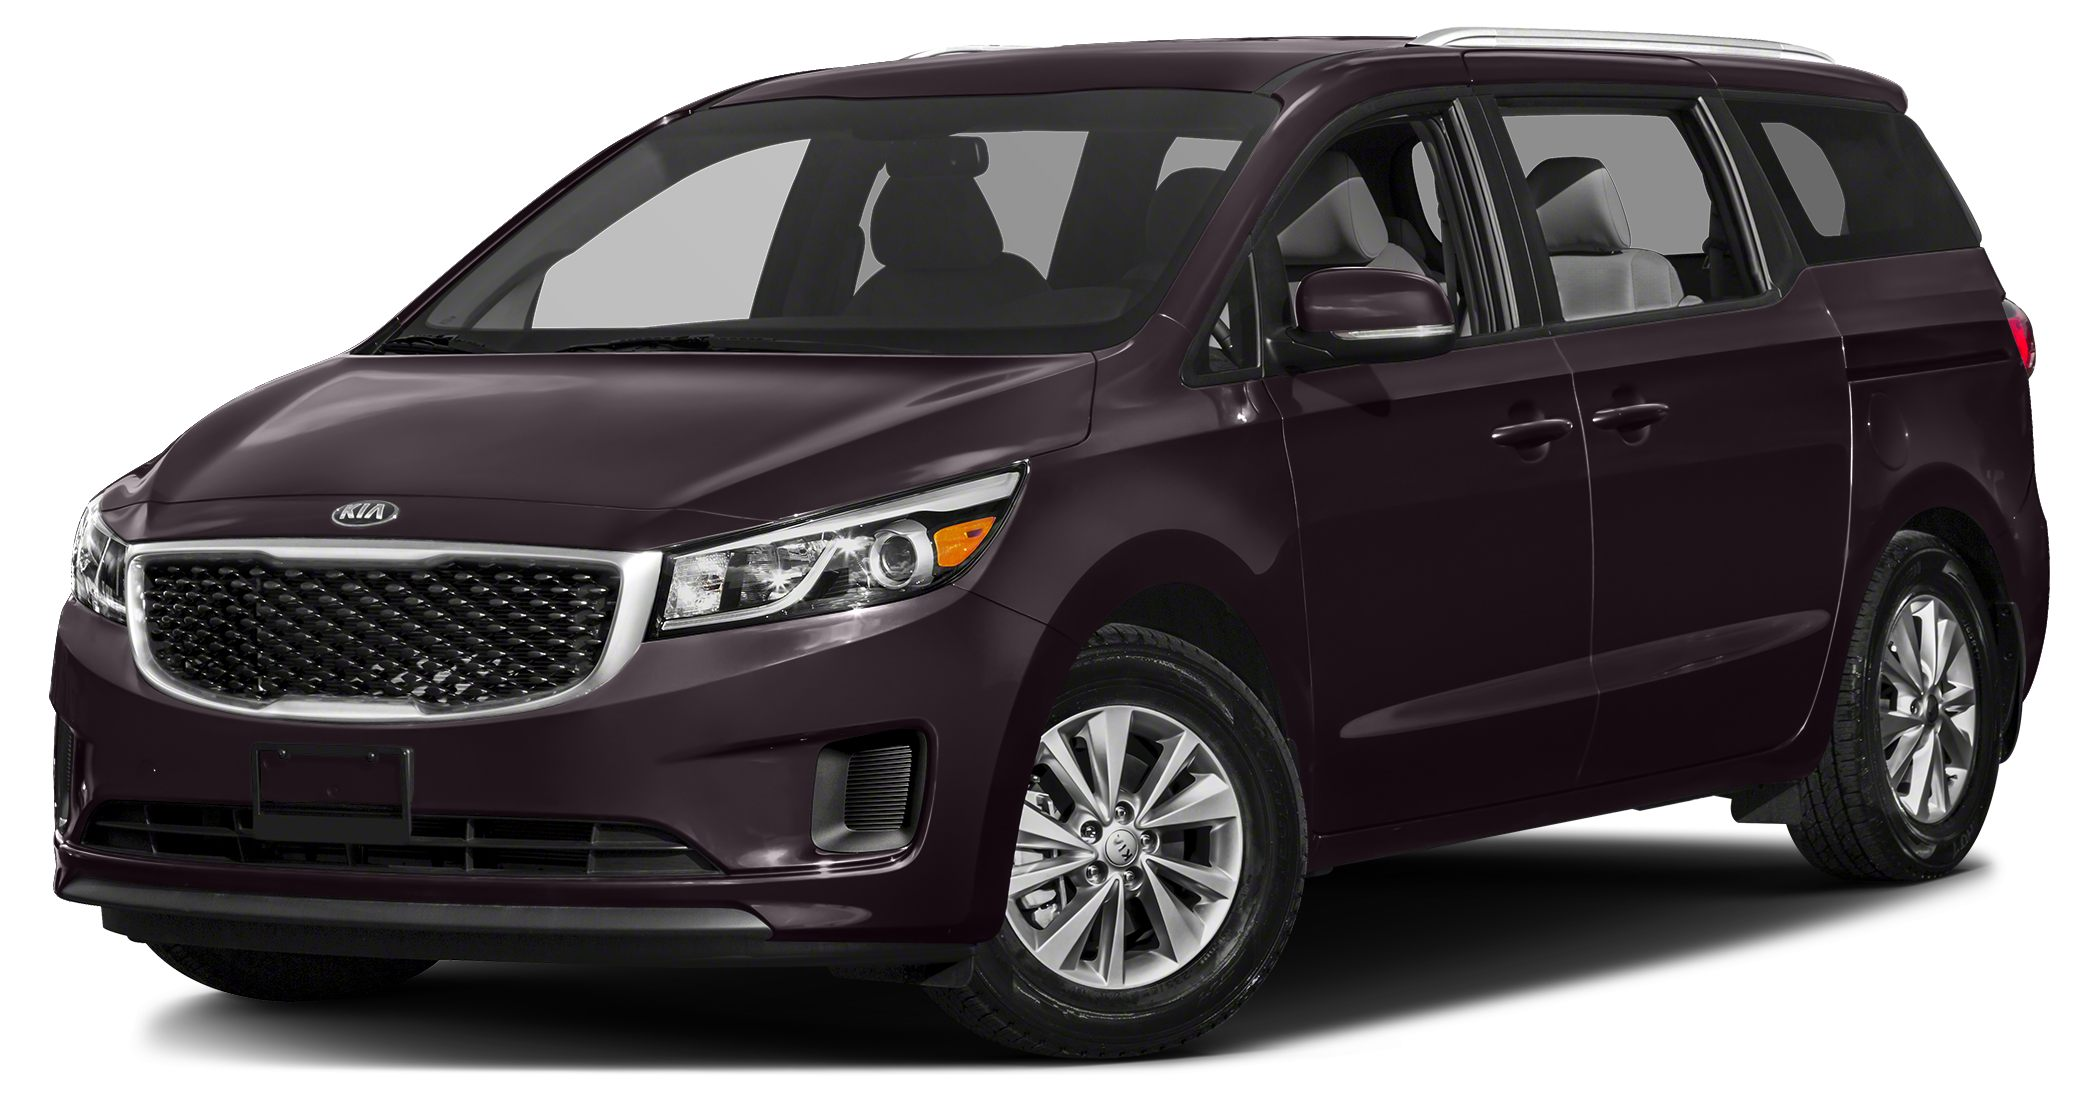 2016 Kia Sedona EX The 2016 Kia Sedona remains a figure of exterior styling and interior functiona